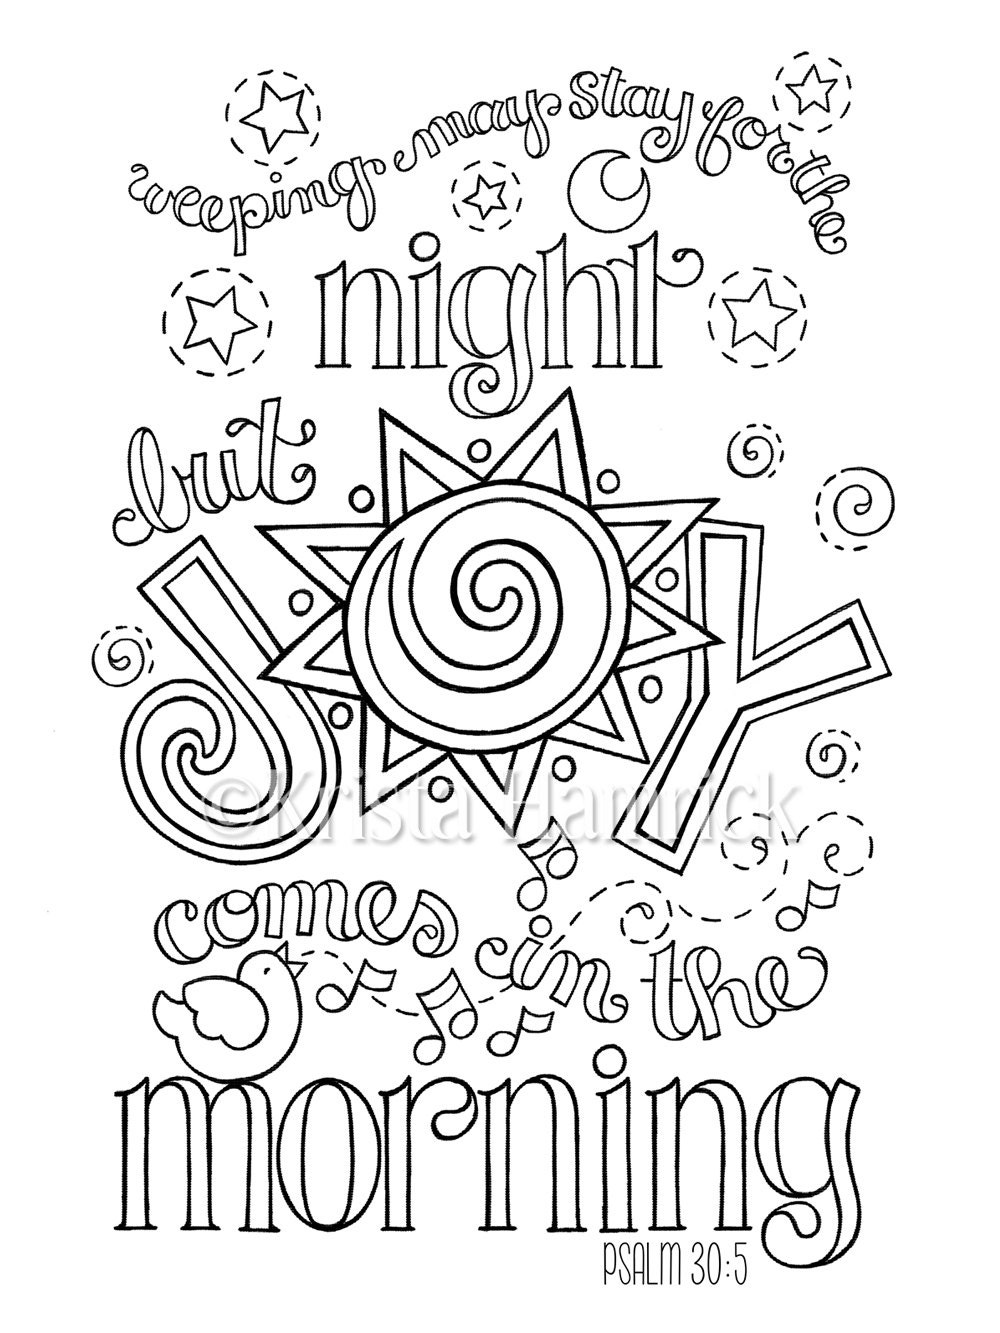 Joy Coloring Page Joy Comes In The Morning Coloring Page In Two Sizes 8.5X11